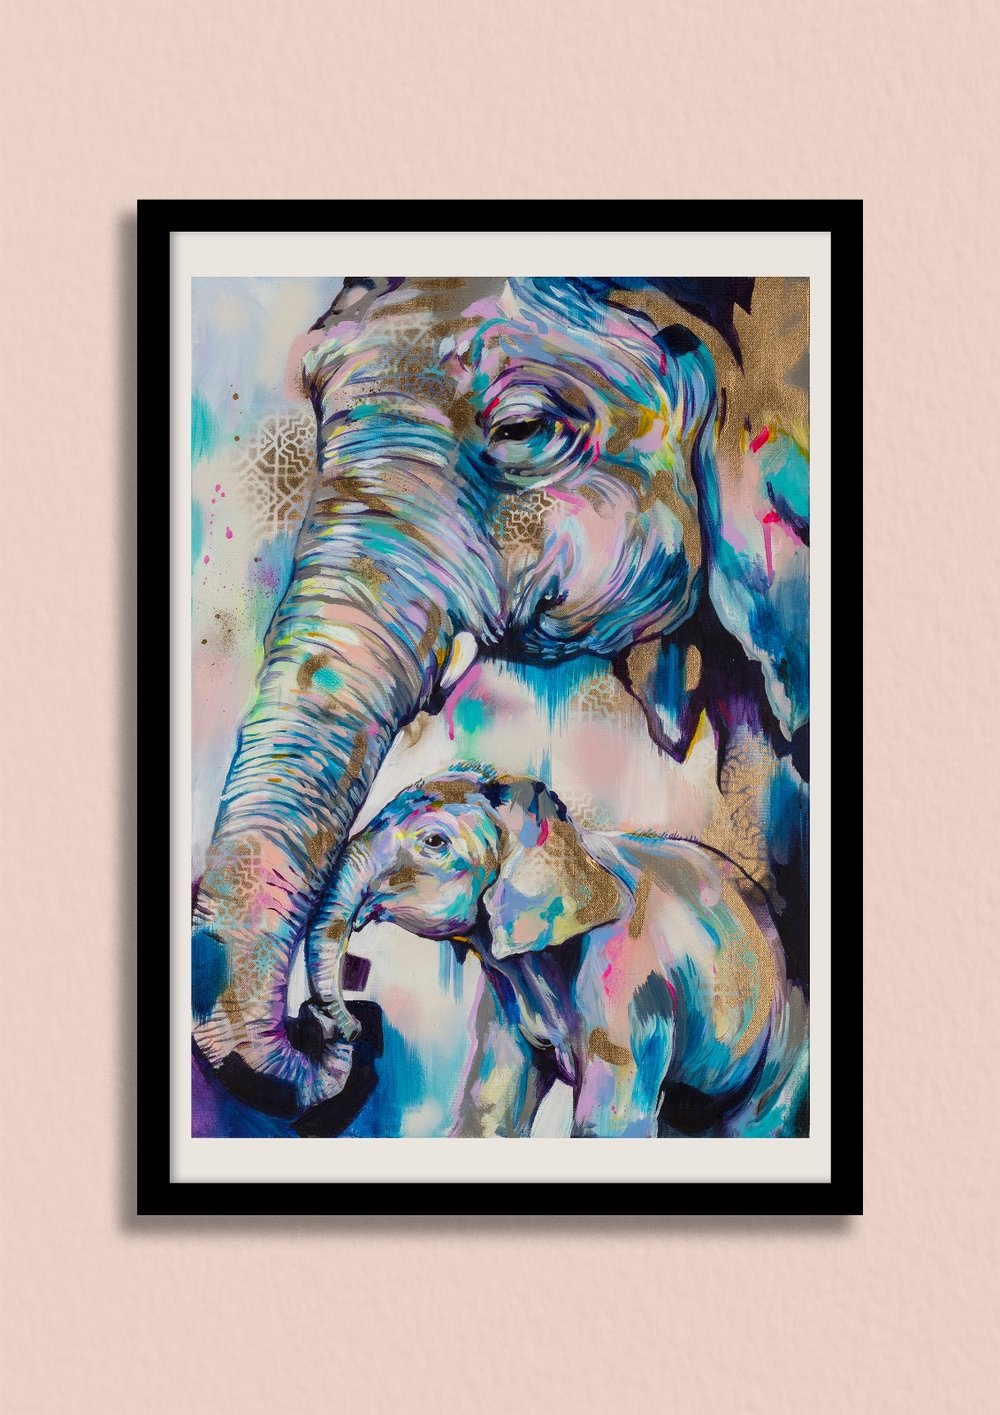 HOLD ON - This tender elephant artwork channels the sadness and fragility of life.Unframed giclée print £150Framed giclée print £220